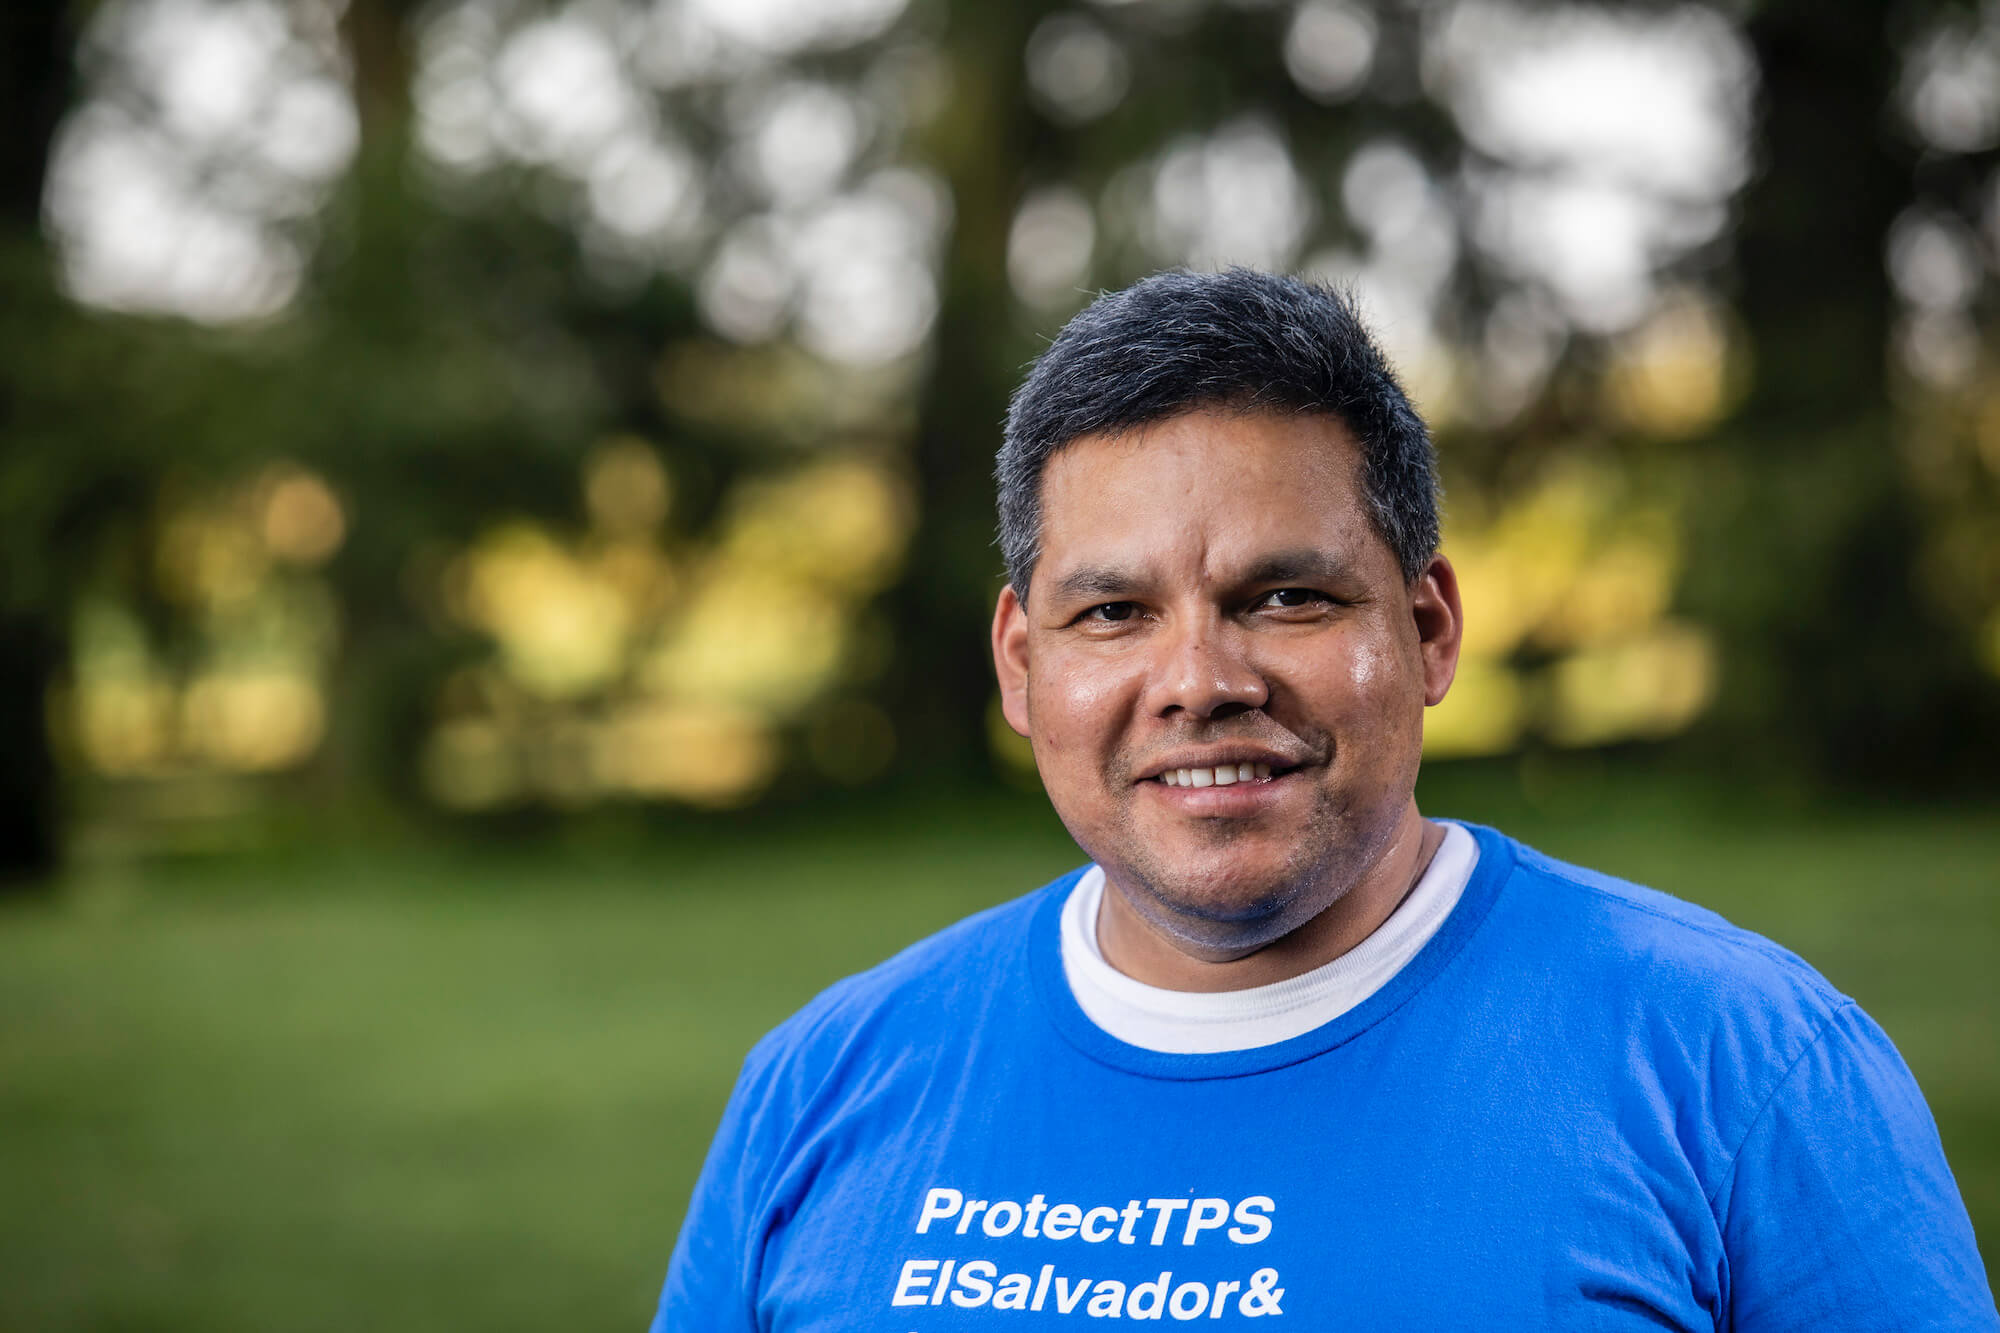 Portrait of José A. Palma, a National TPS Alliance spokesperson and coordinator